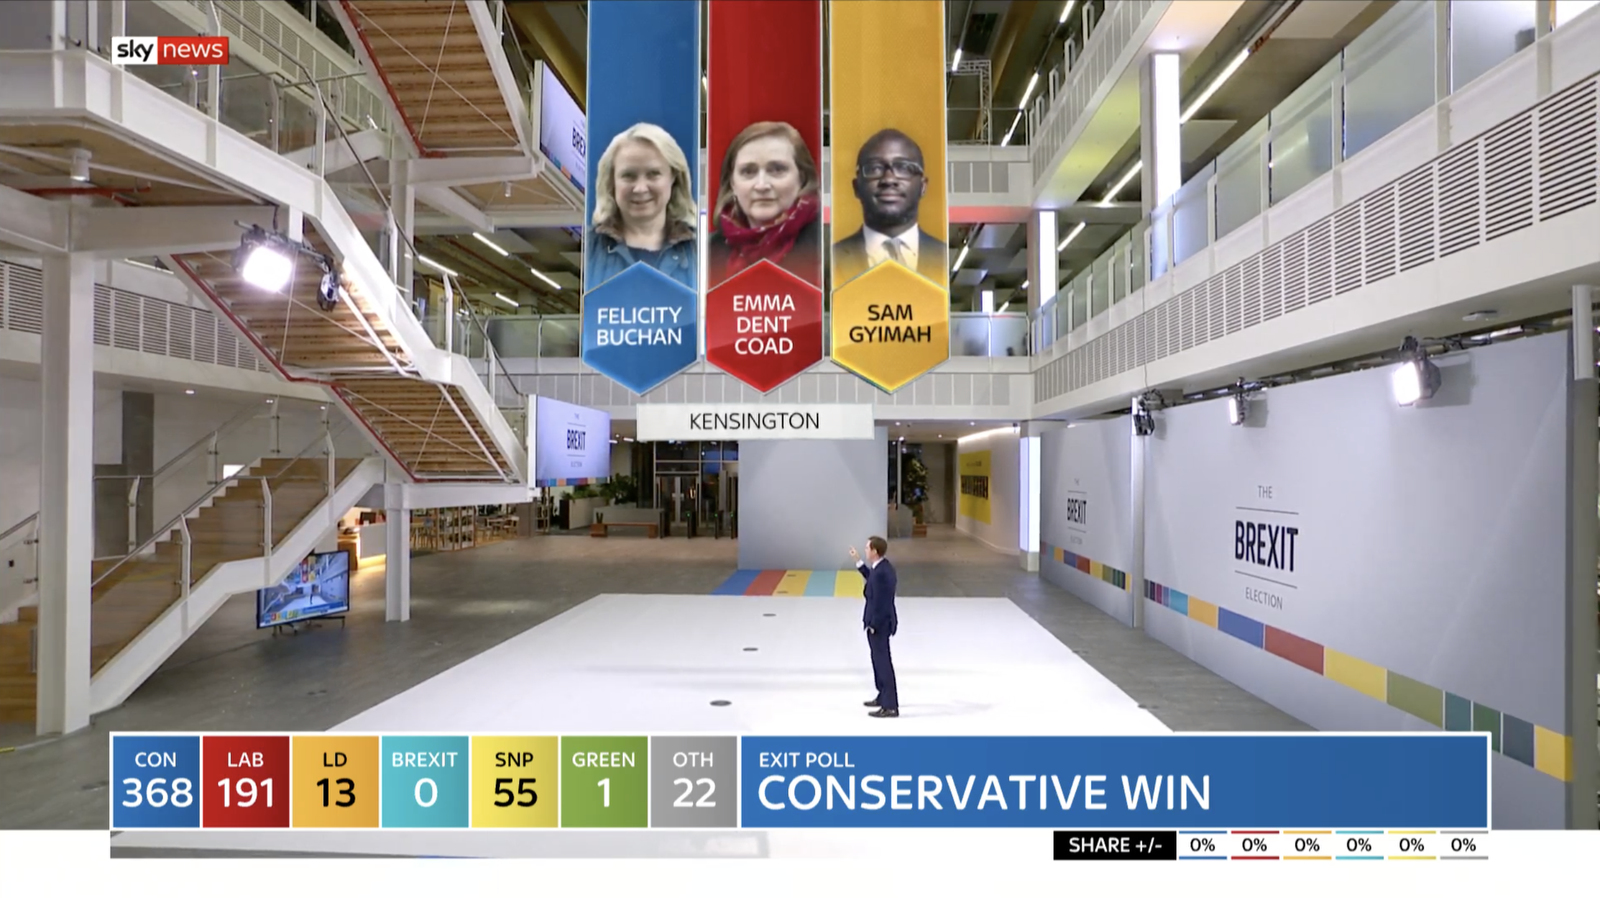 NCS_Sky-News-2019-General-Election_023